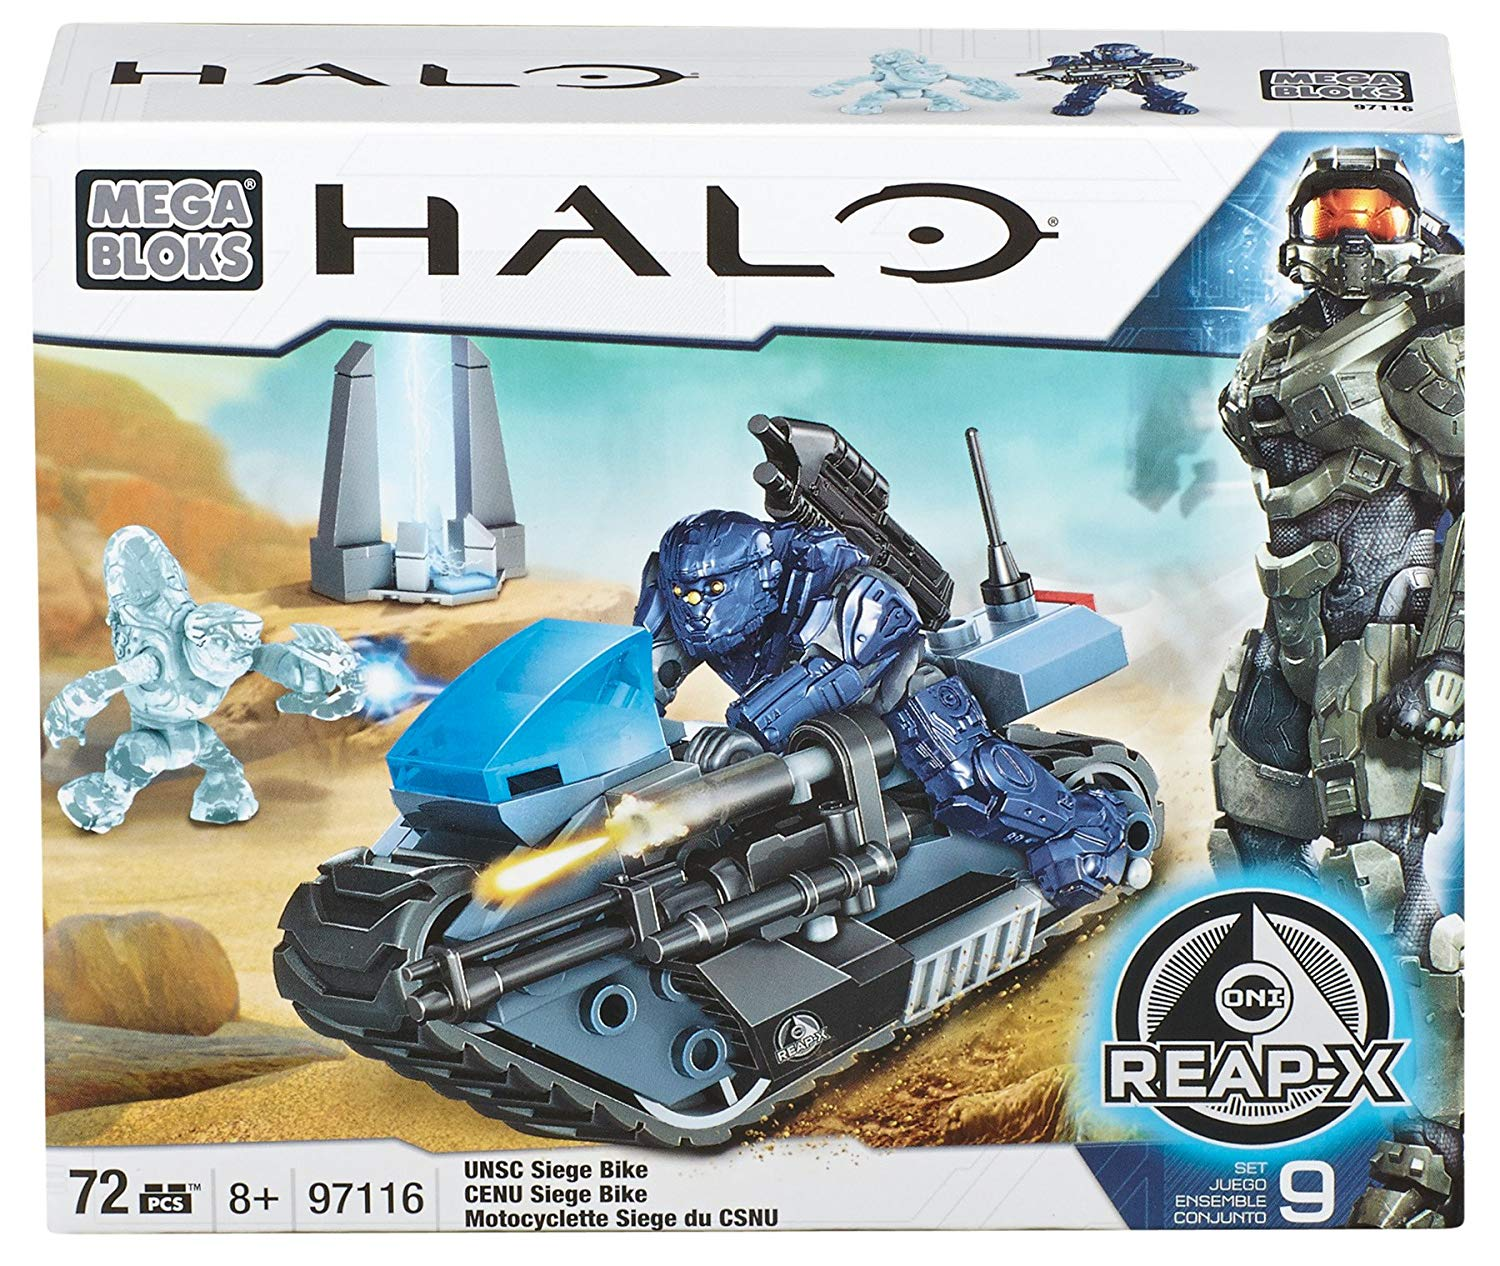 Halo Mega Bloks UNSC Siege Bike officially licensed Halo Mega Bloks product at B.A. Toys.